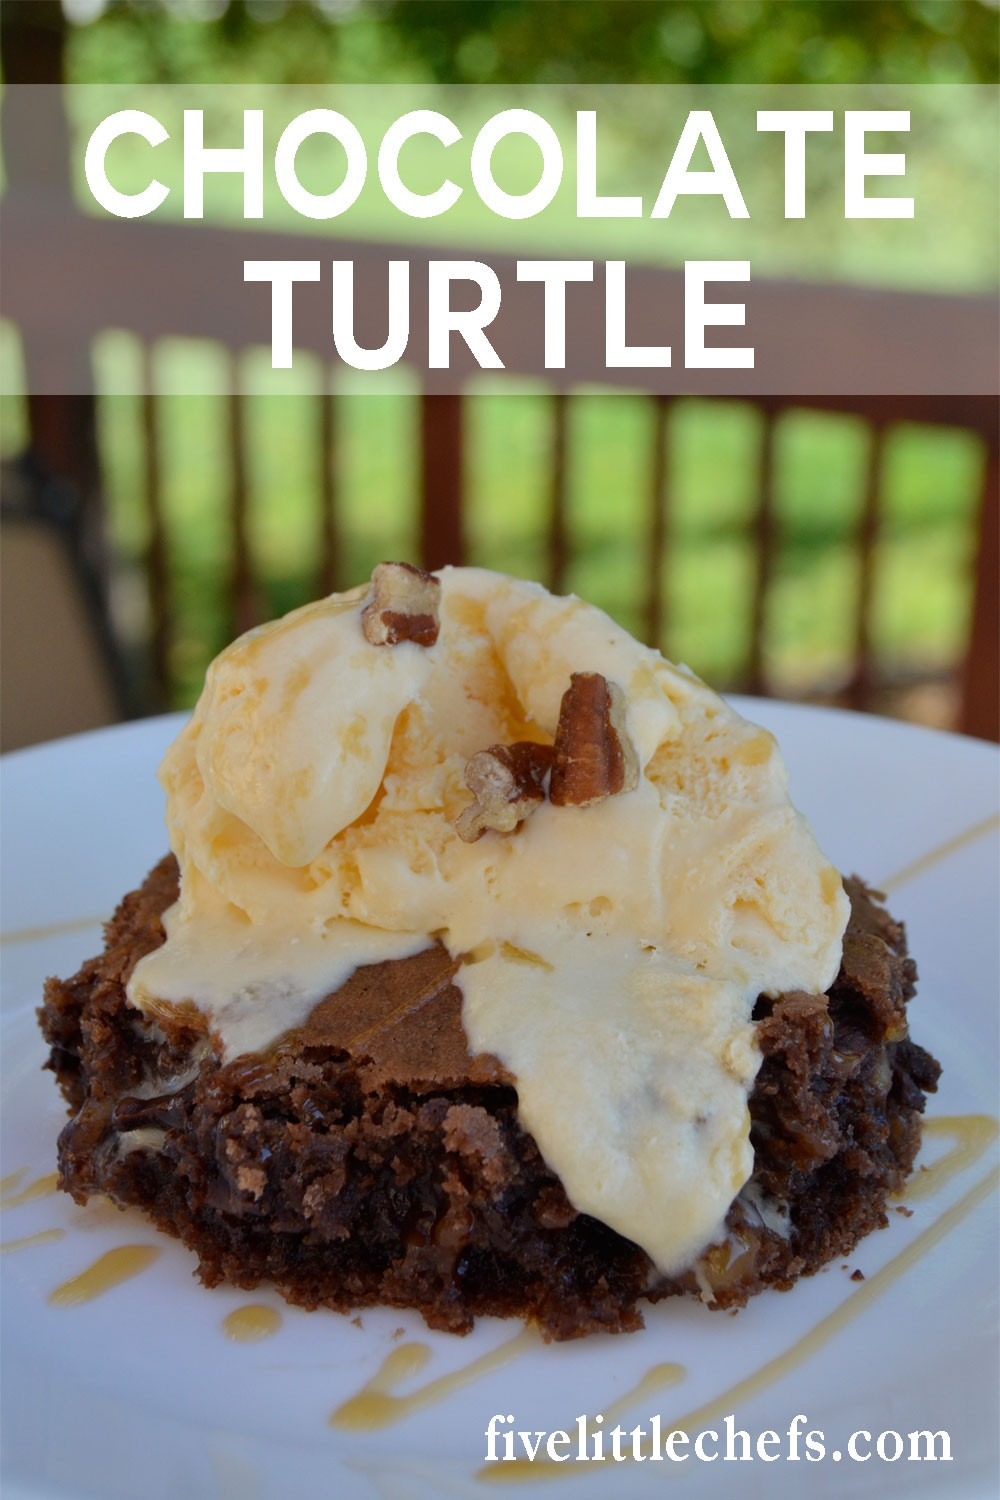 Chocolate Turtle Cake is an easy recipe. Use a german chocolate cake mix then add in some chocolate chips and caramel.